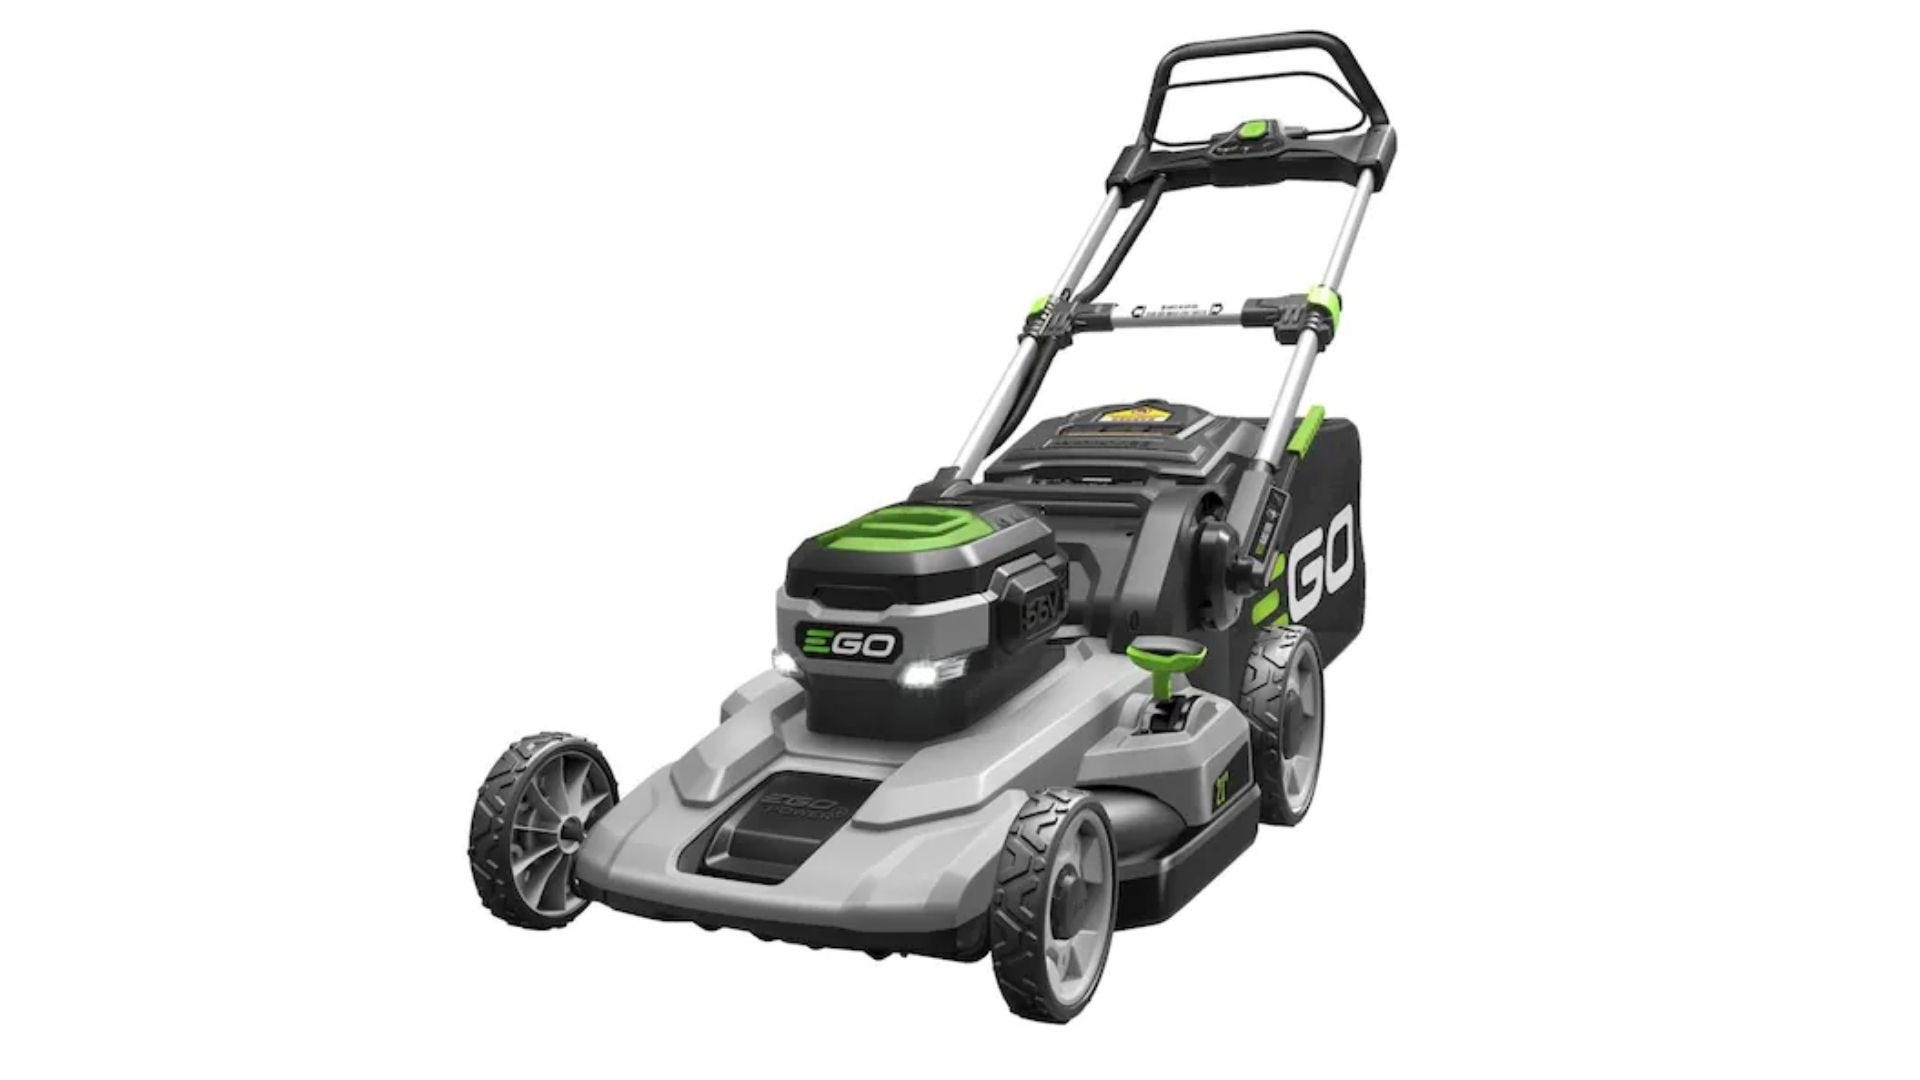 EGO POWER+ 56-Volt 21-in Push Cordless Electric Lawn Mower 5 Ah